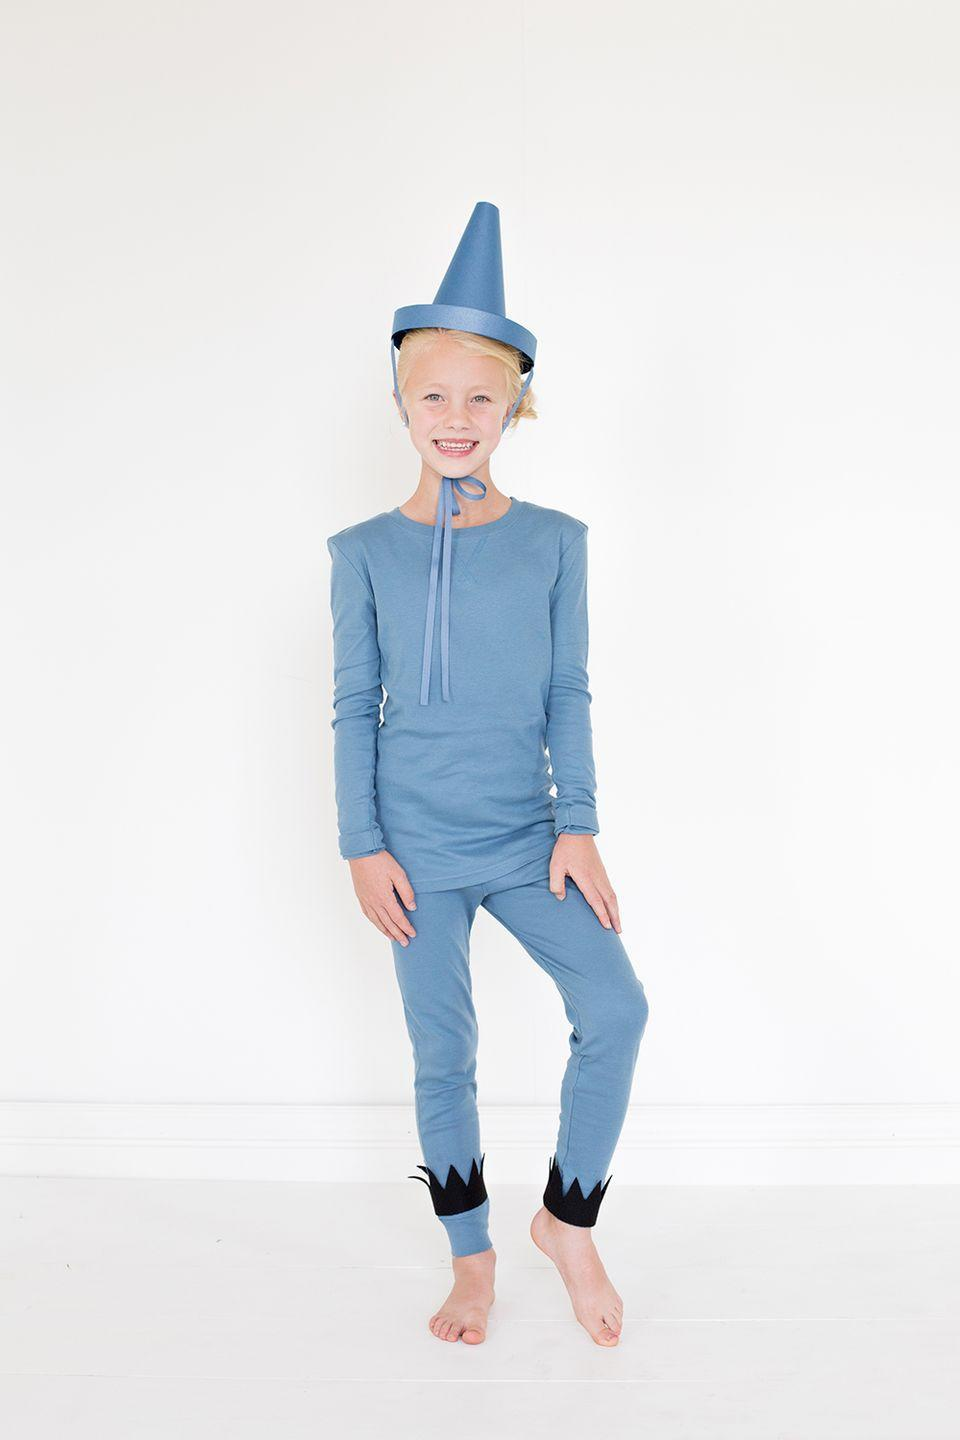 """<p>Inspired by children's novel <em>The Day the Crayons Quit</em>, this costume only requires a monochromatic pajama set and DIY hat. </p><p><strong>Get the tutorial at <a href=""""https://thehousethatlarsbuilt.com/2015/10/the-day-the-crayons-quit-costumes.html/#more-16403"""" rel=""""nofollow noopener"""" target=""""_blank"""" data-ylk=""""slk:The House That Lars Built"""" class=""""link rapid-noclick-resp"""">The House That Lars Built</a>. </strong></p><p><strong><a class=""""link rapid-noclick-resp"""" href=""""https://www.amazon.com/Springhill-Colored-Cardstock-147gsm-Sheets/dp/B009ZMIP8I/?tag=syn-yahoo-20&ascsubtag=%5Bartid%7C10050.g.23785711%5Bsrc%7Cyahoo-us"""" rel=""""nofollow noopener"""" target=""""_blank"""" data-ylk=""""slk:SHOP BLUE CARDSTOCK"""">SHOP BLUE CARDSTOCK</a><br></strong></p>"""